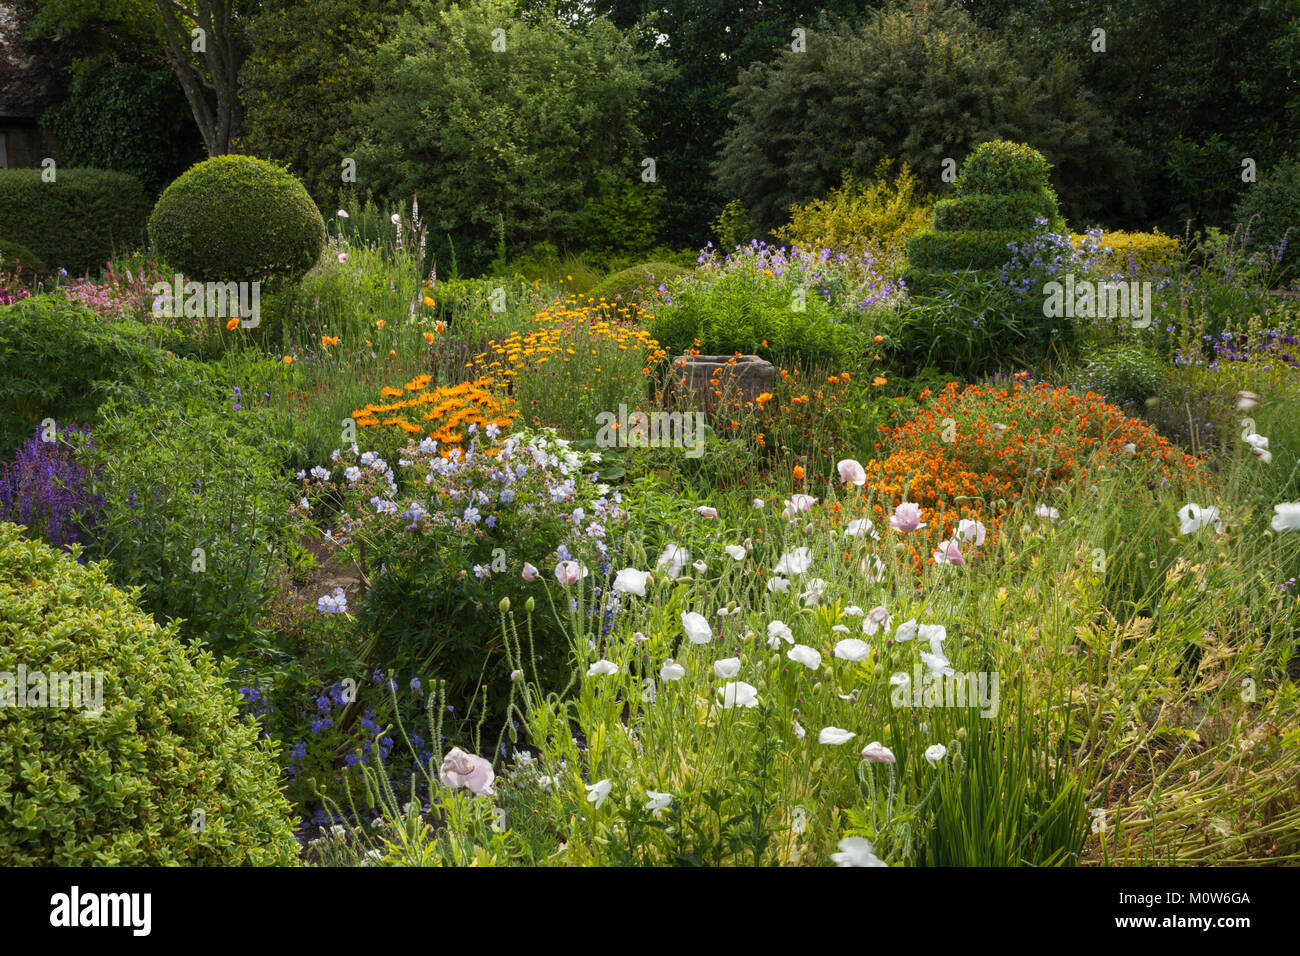 Colourful herbaceous flowers grow informally among topiary spheres and spirals in the flower garden of Herterton - Stock Image